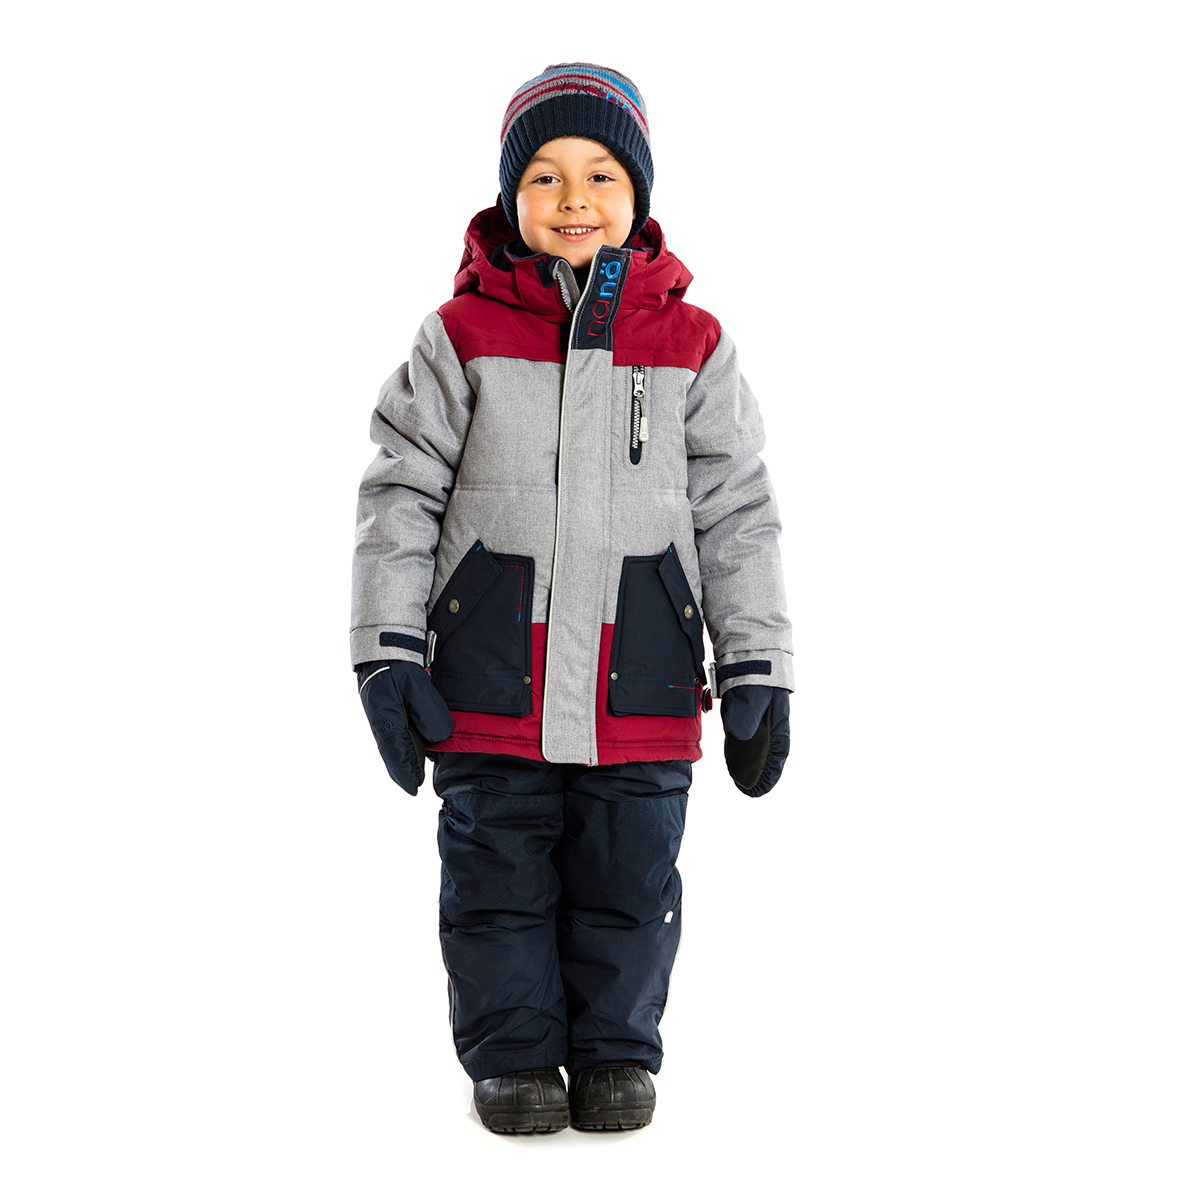 Boy's snowsuits to fit all sizes from young infants to strapping Sixteen, in a full spectrum of colors, from rip stop puffer jackets to snow boots, two-piece kid's snowsuits, snow pants, camo snow suits you name it, we stock it.